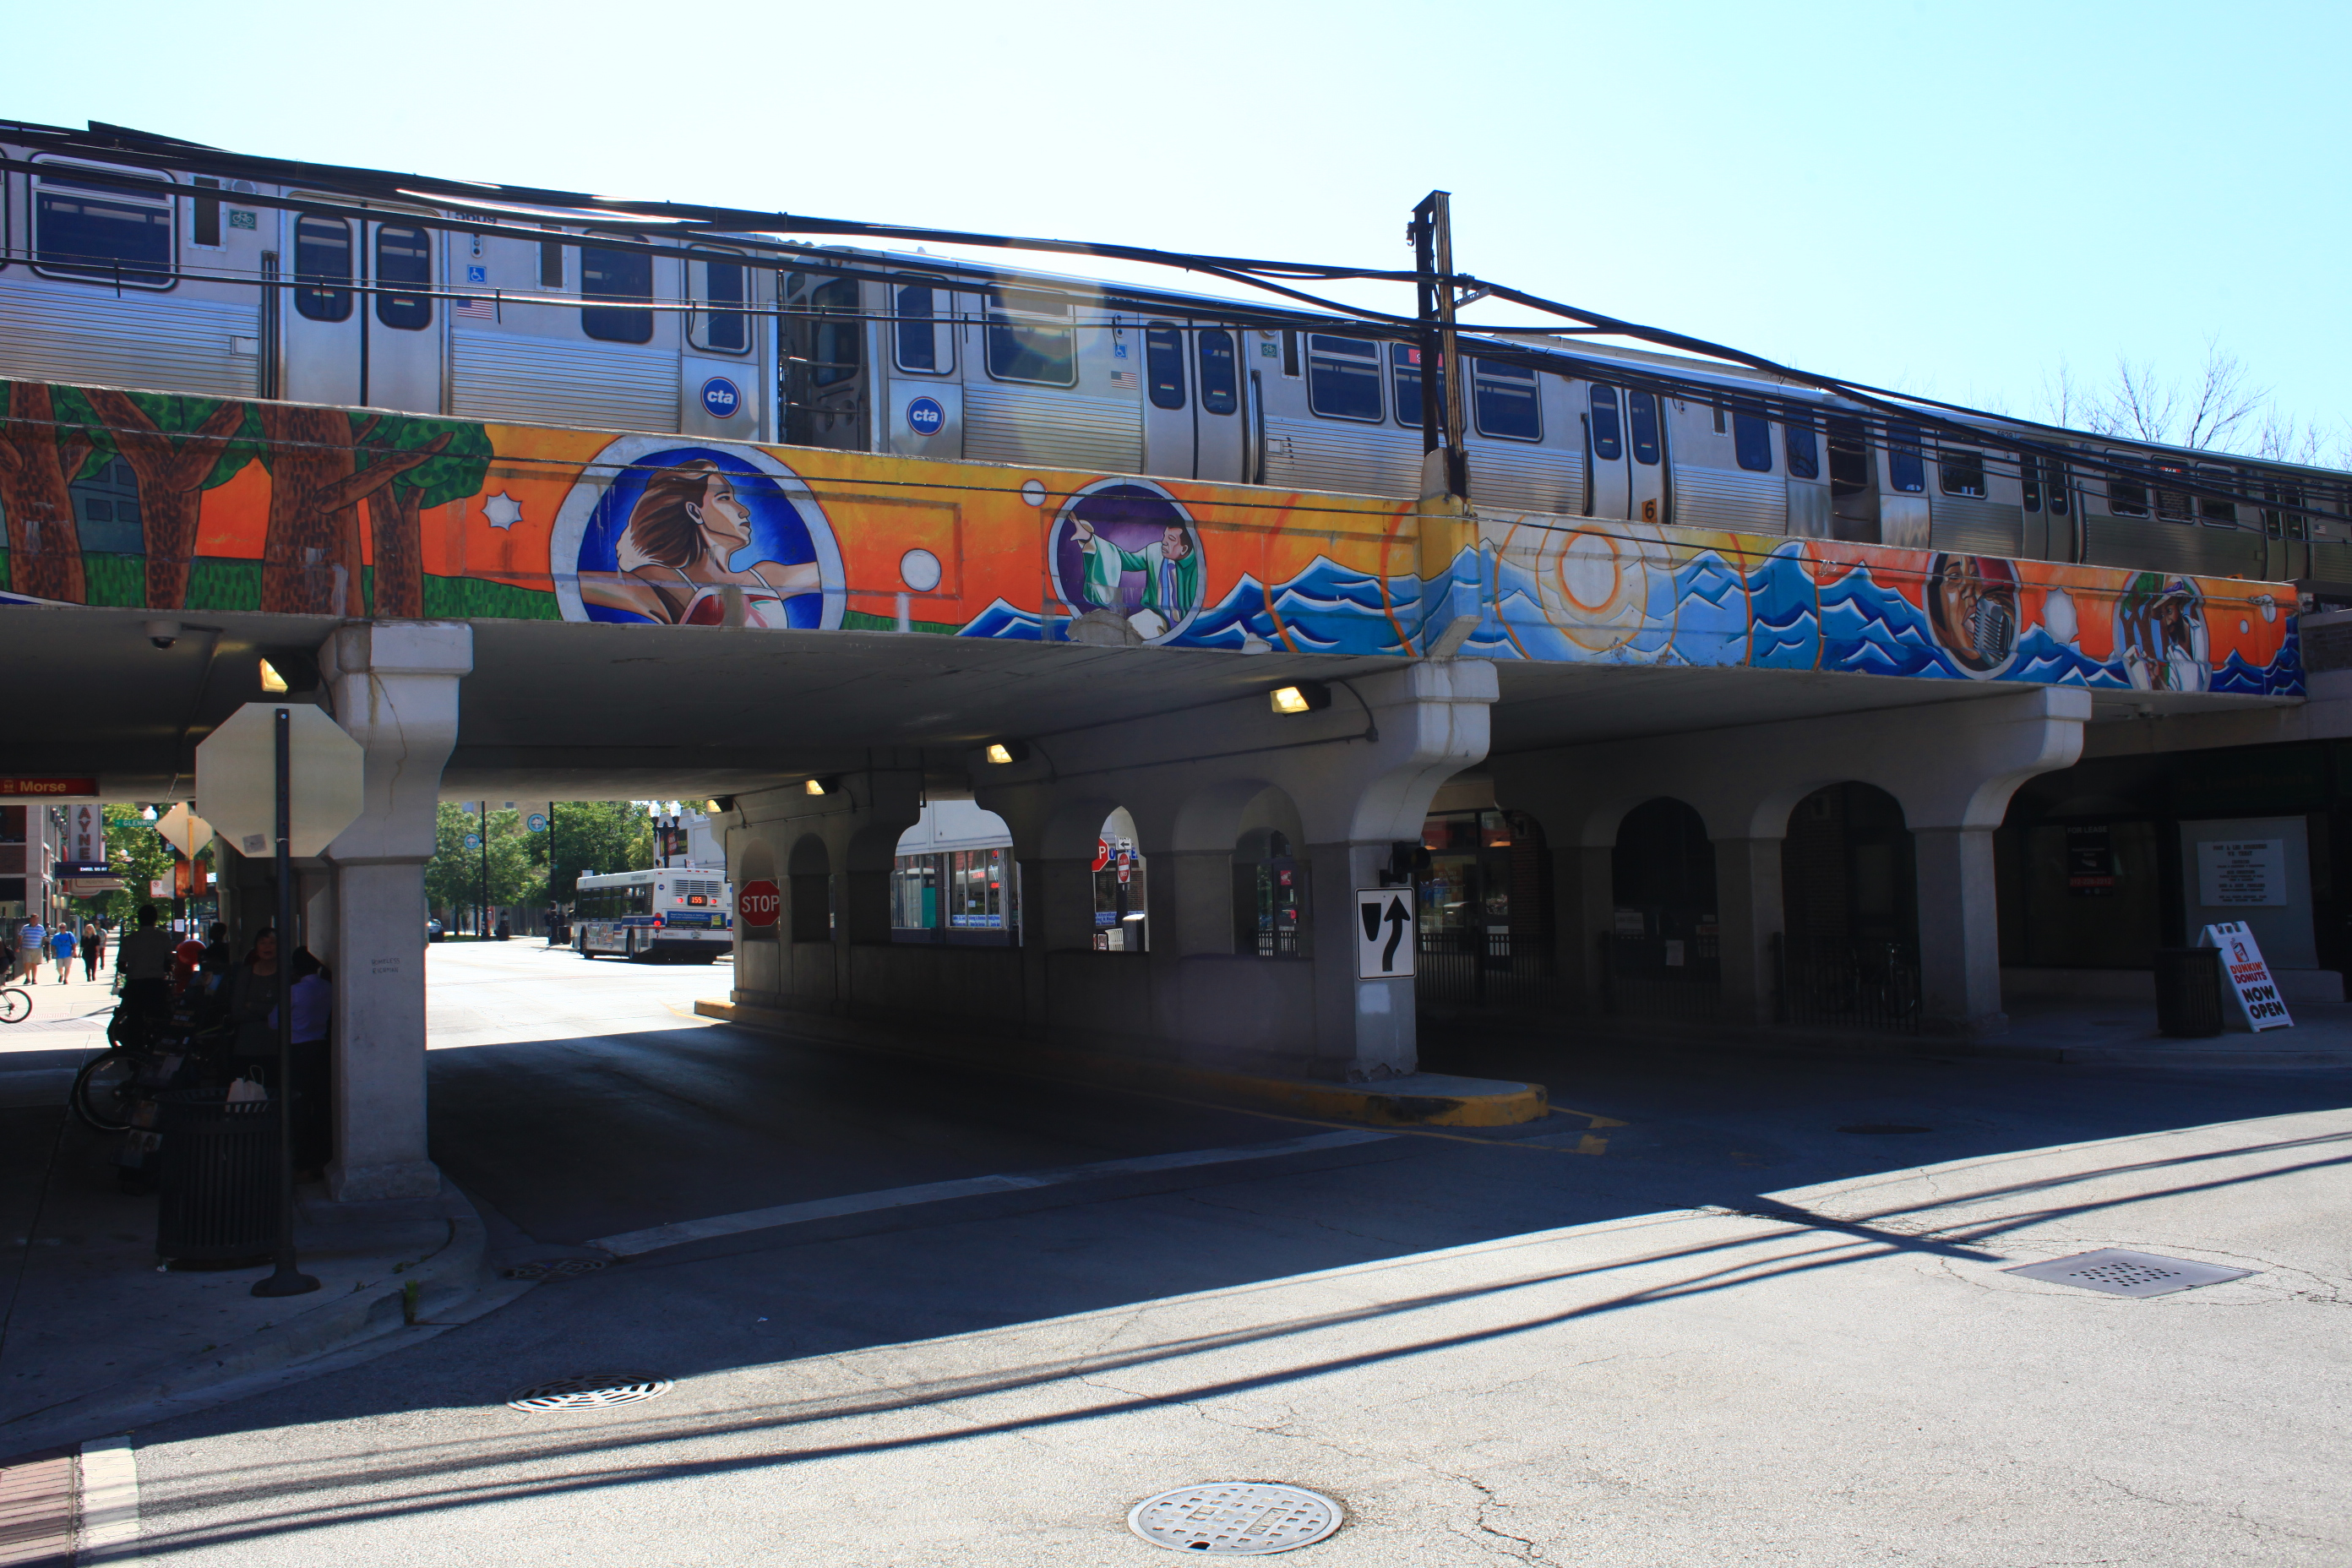 Mile of Murals on Morse & Glenwood viaduct